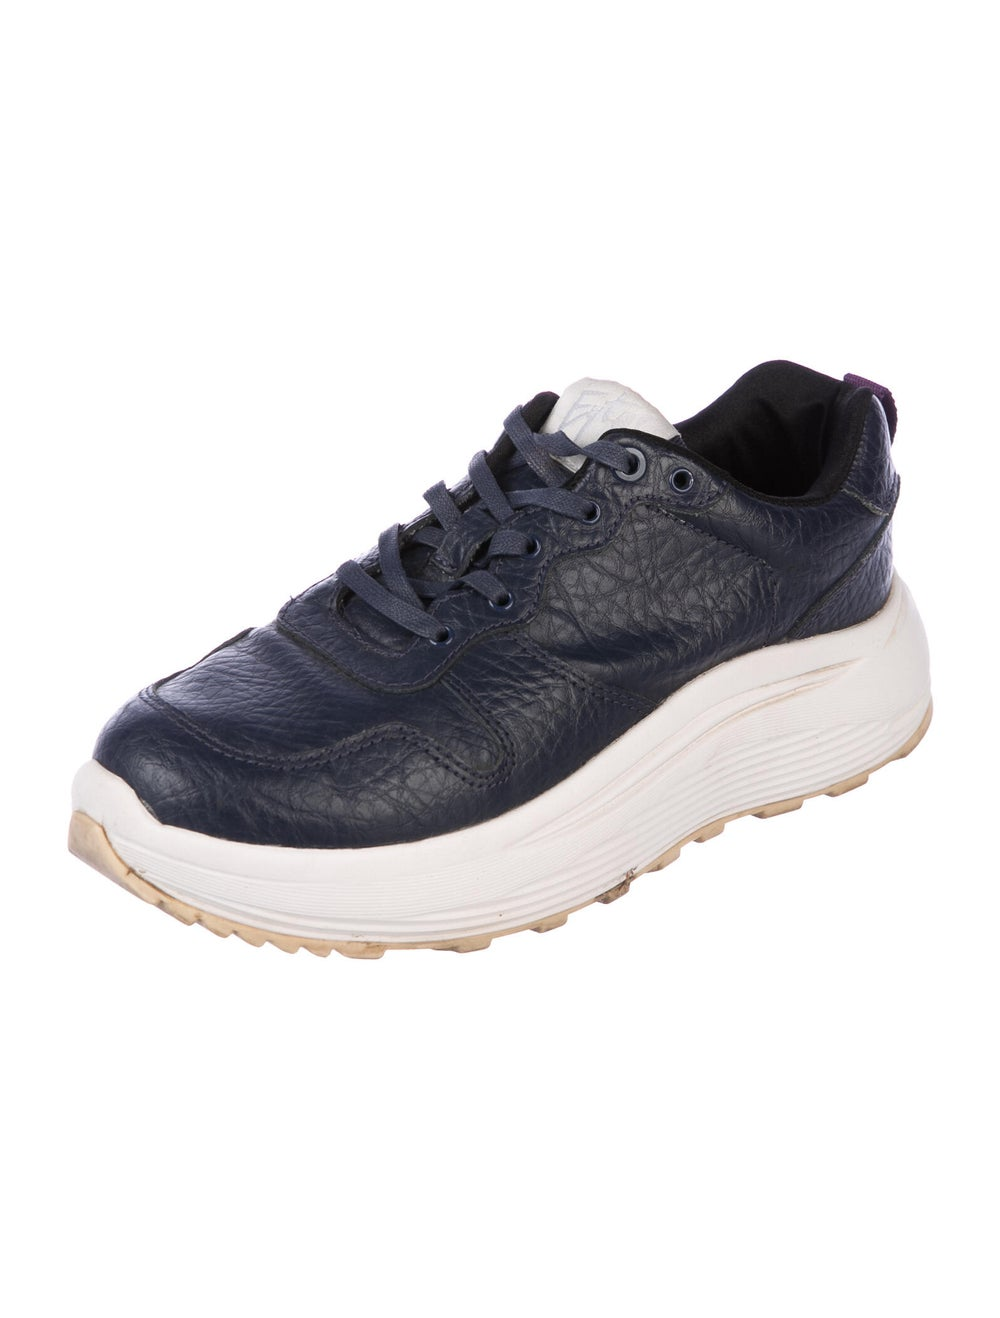 Eytys Leather Sneakers Blue - image 2